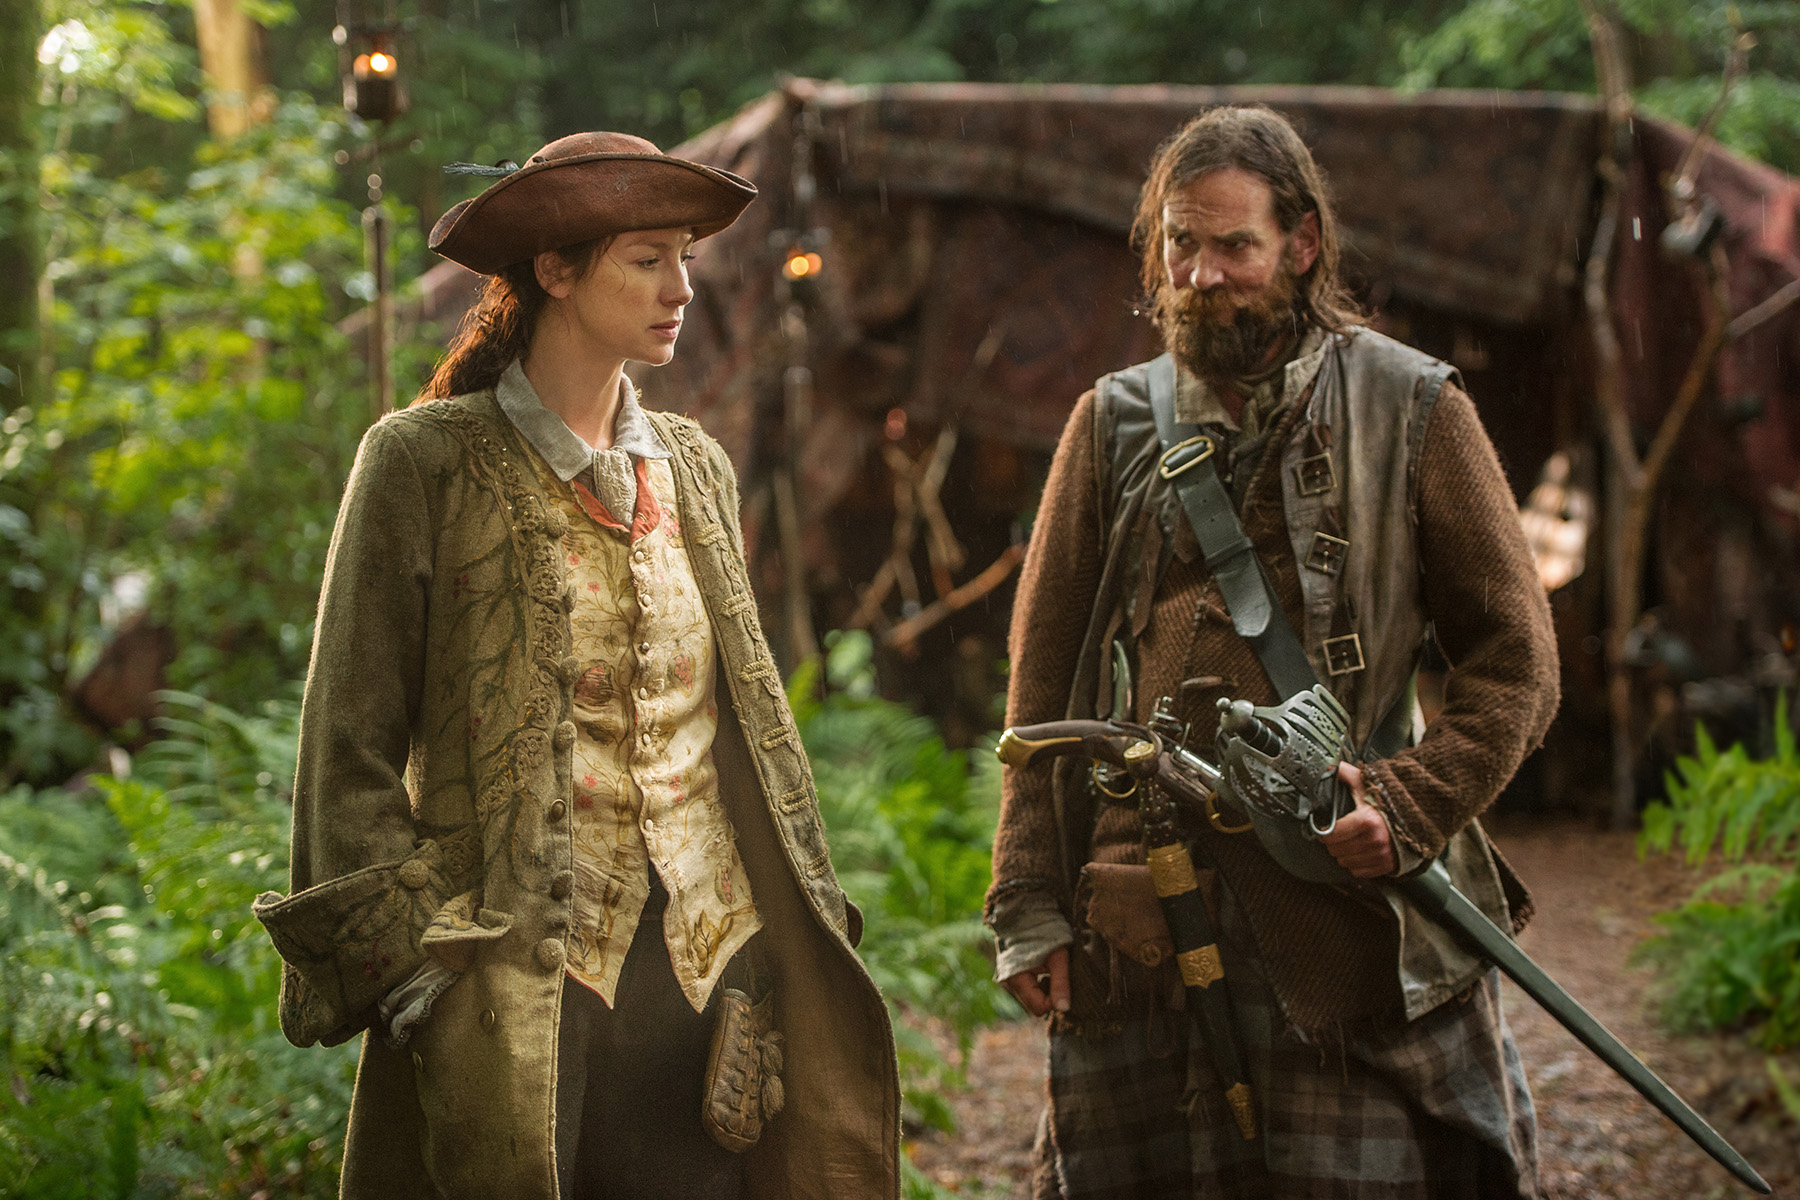 Caitriona Balfe (Claire Randall Fraser) and Duncan Lacroix (Murtagh Fitzgibbons)